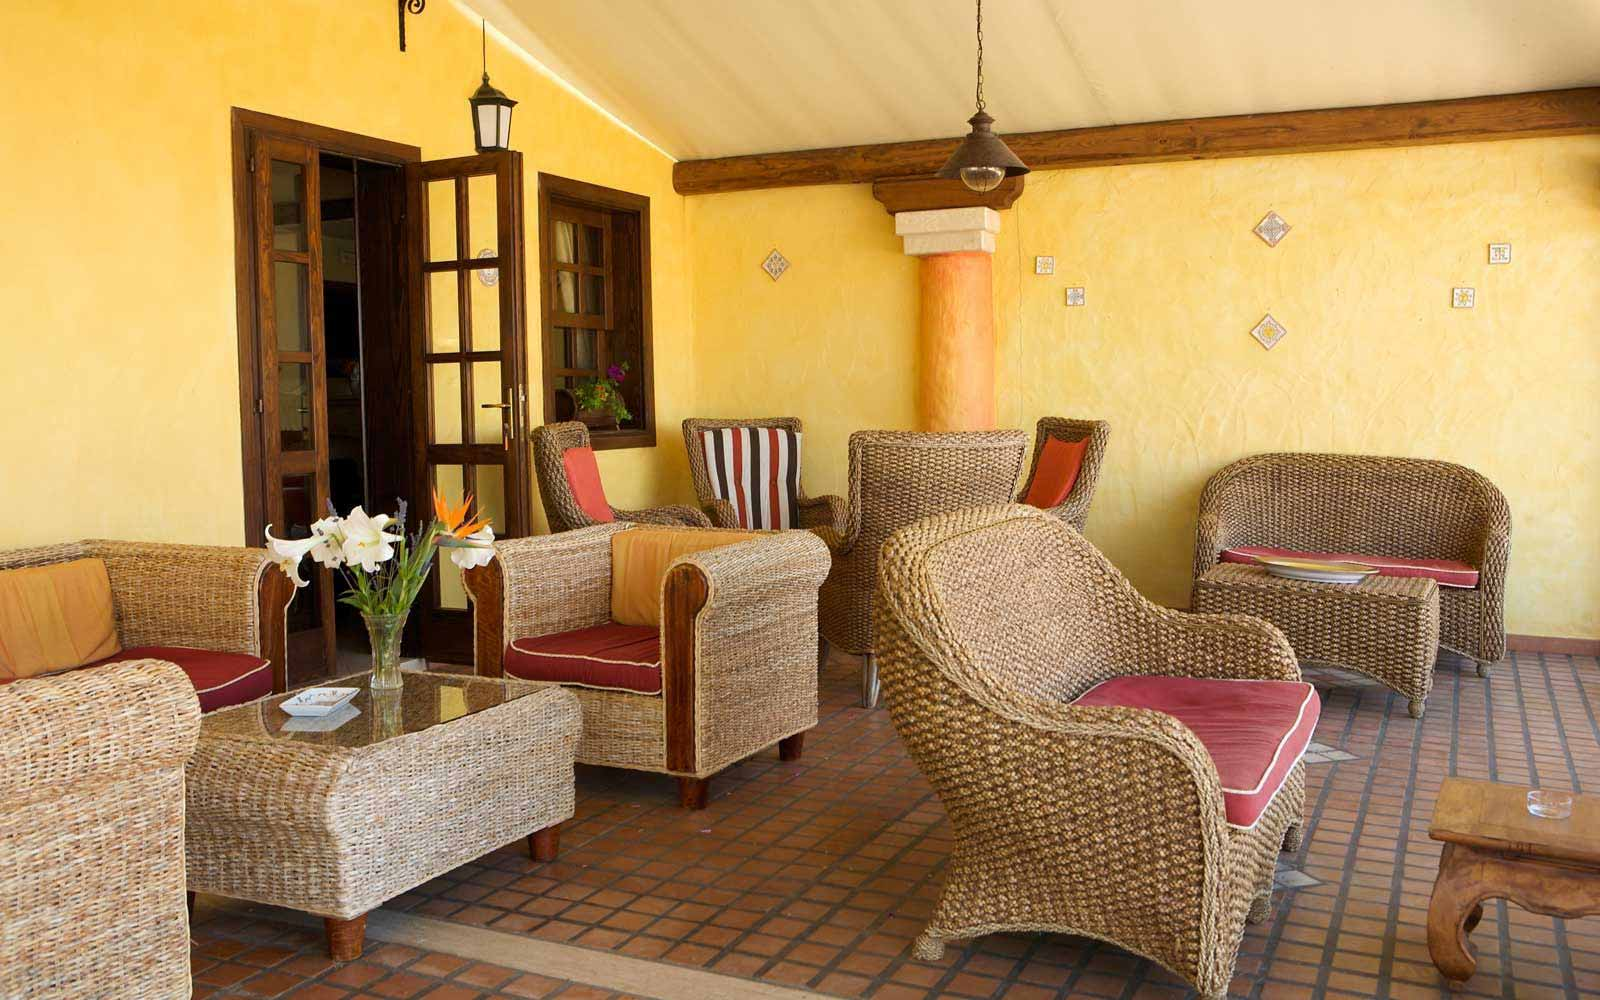 Seating at the front of the Is Benas Country Lodge